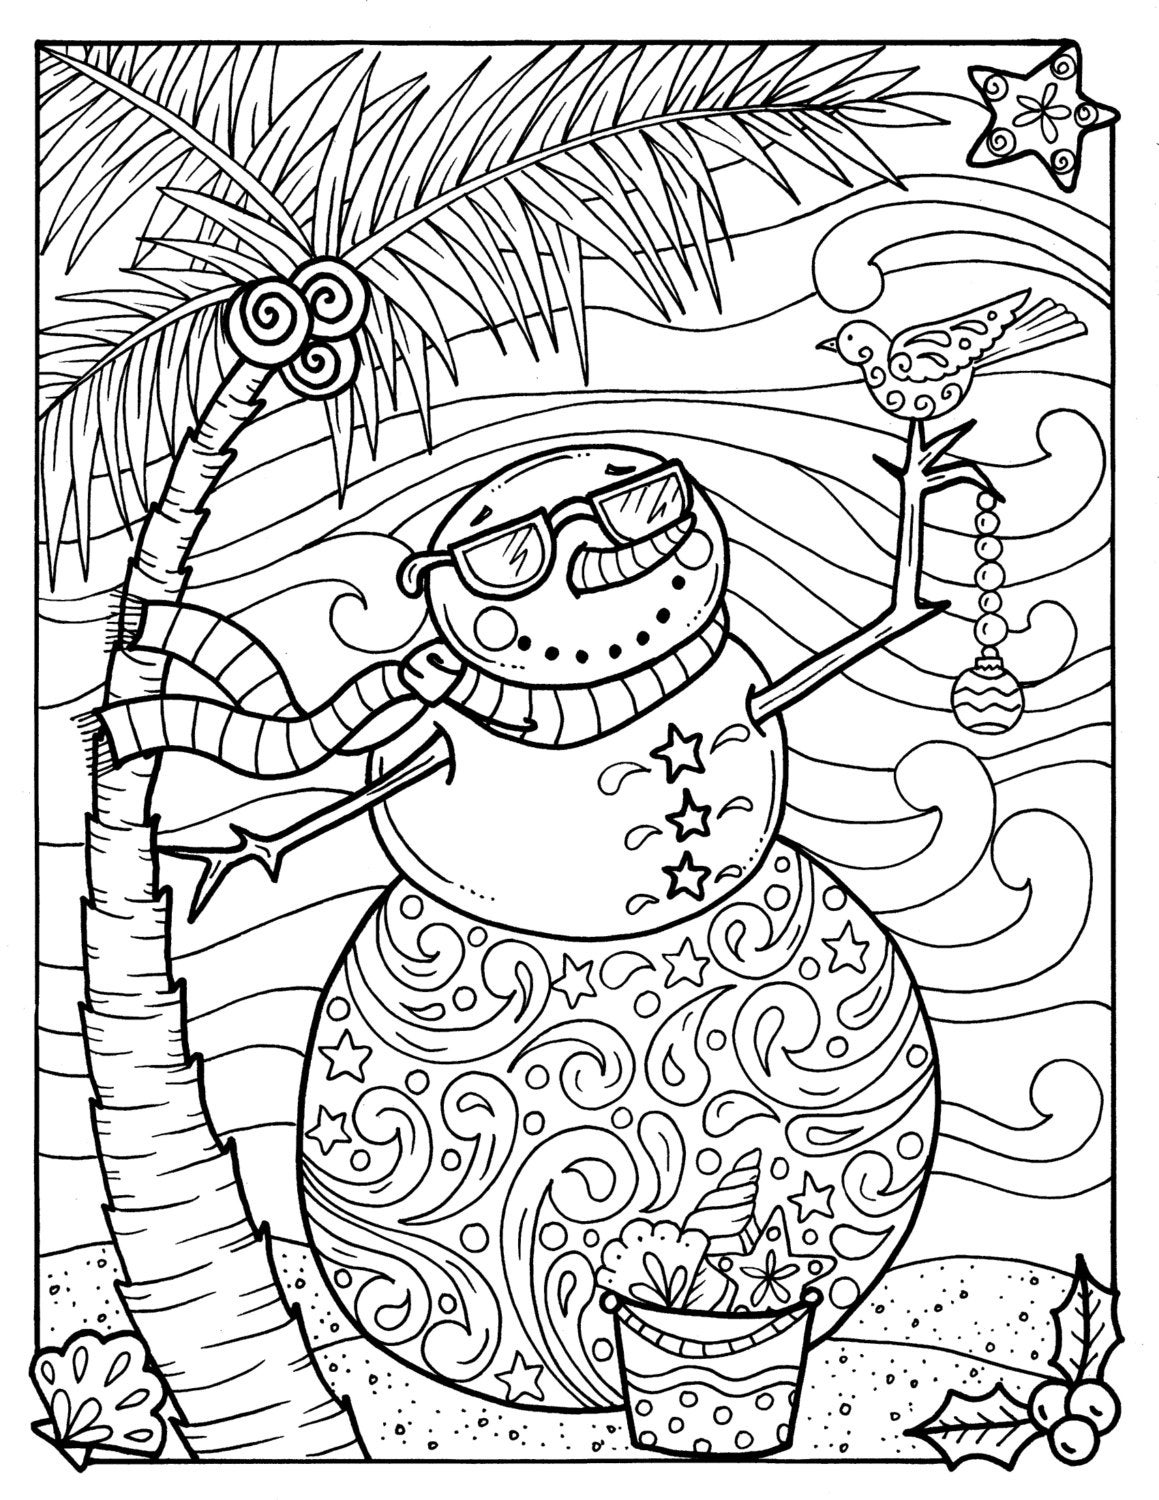 tropical snowman coloring page coloring beach holidays